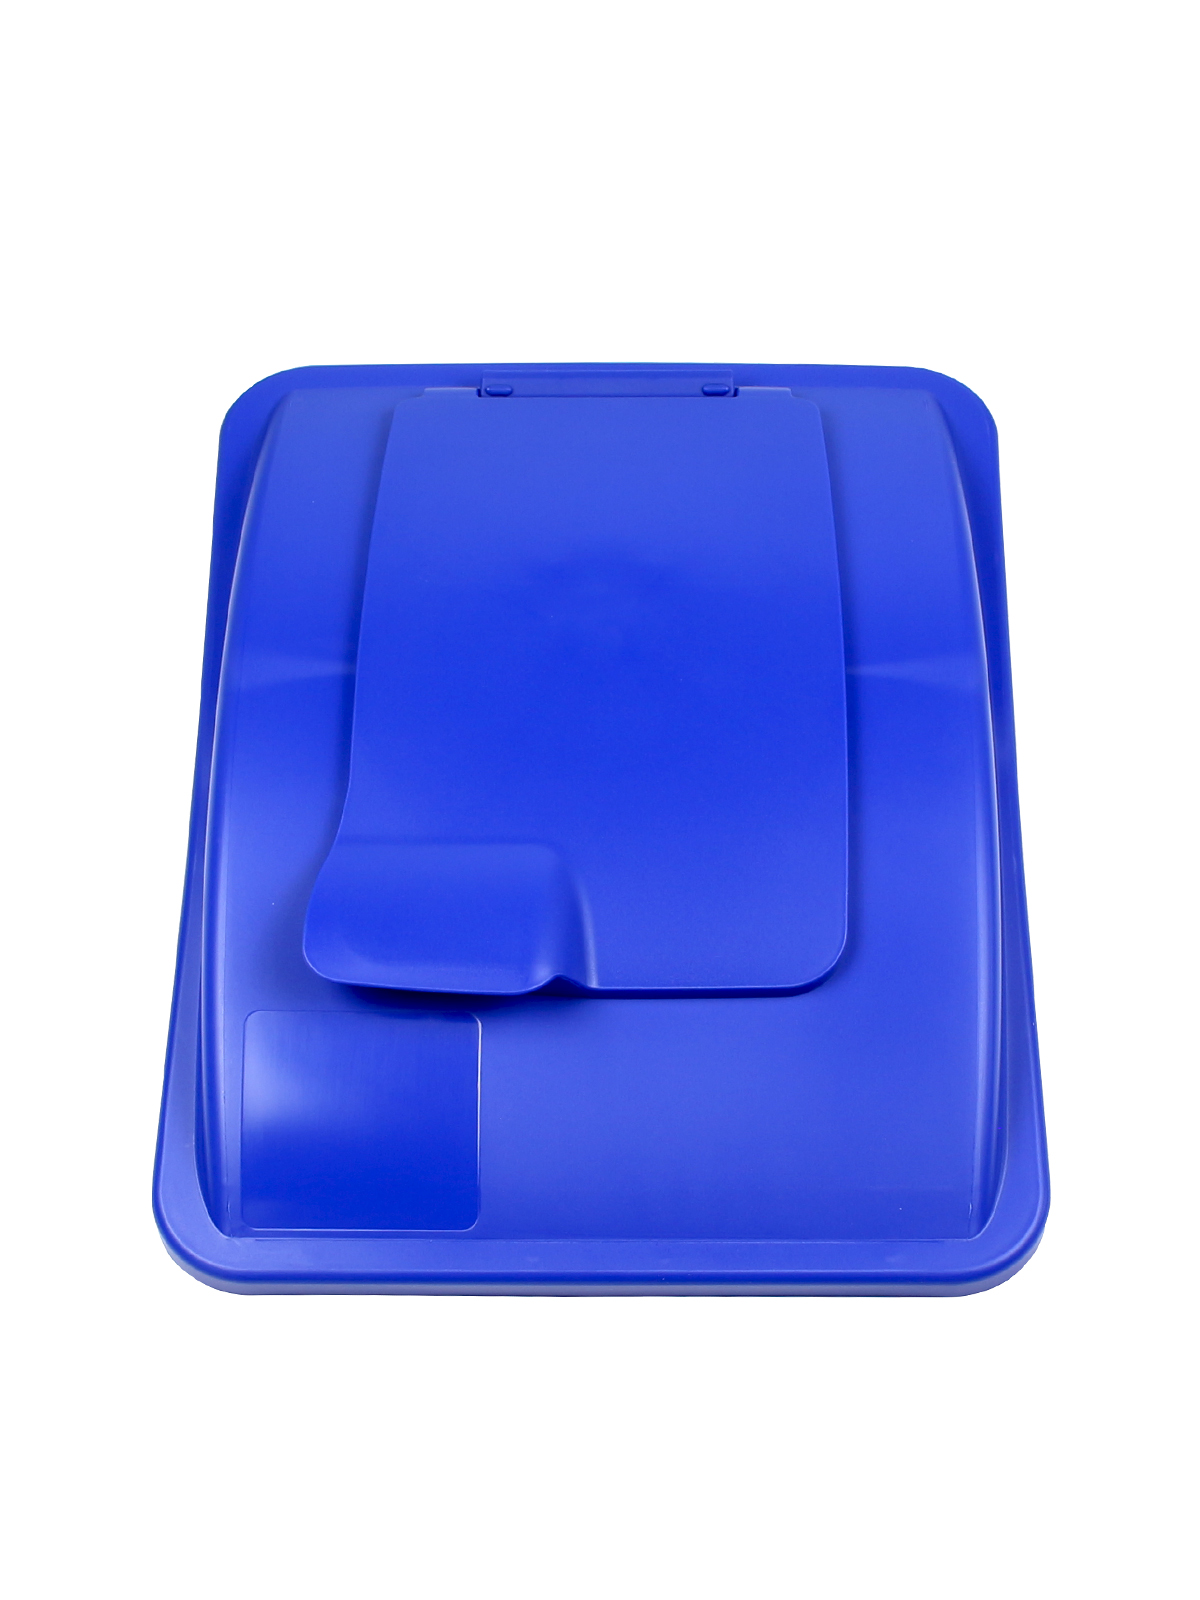 WASTE WATCHER XL - Lid - Solid Lift - Royal Blue